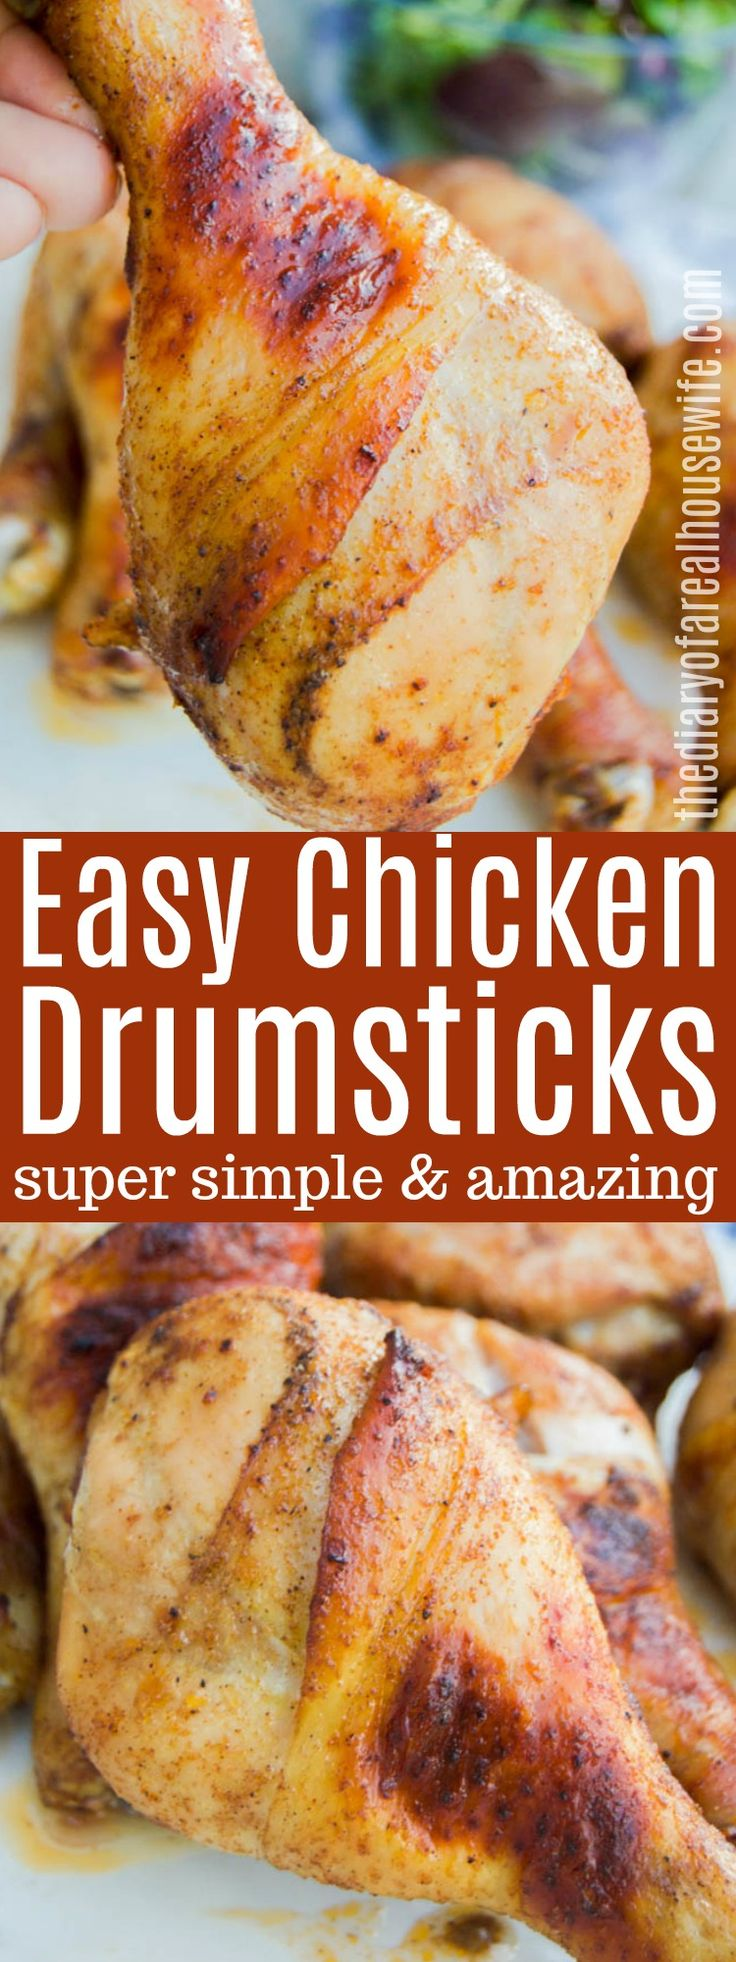 Healthy Baked Chicken Drumstick Recipes